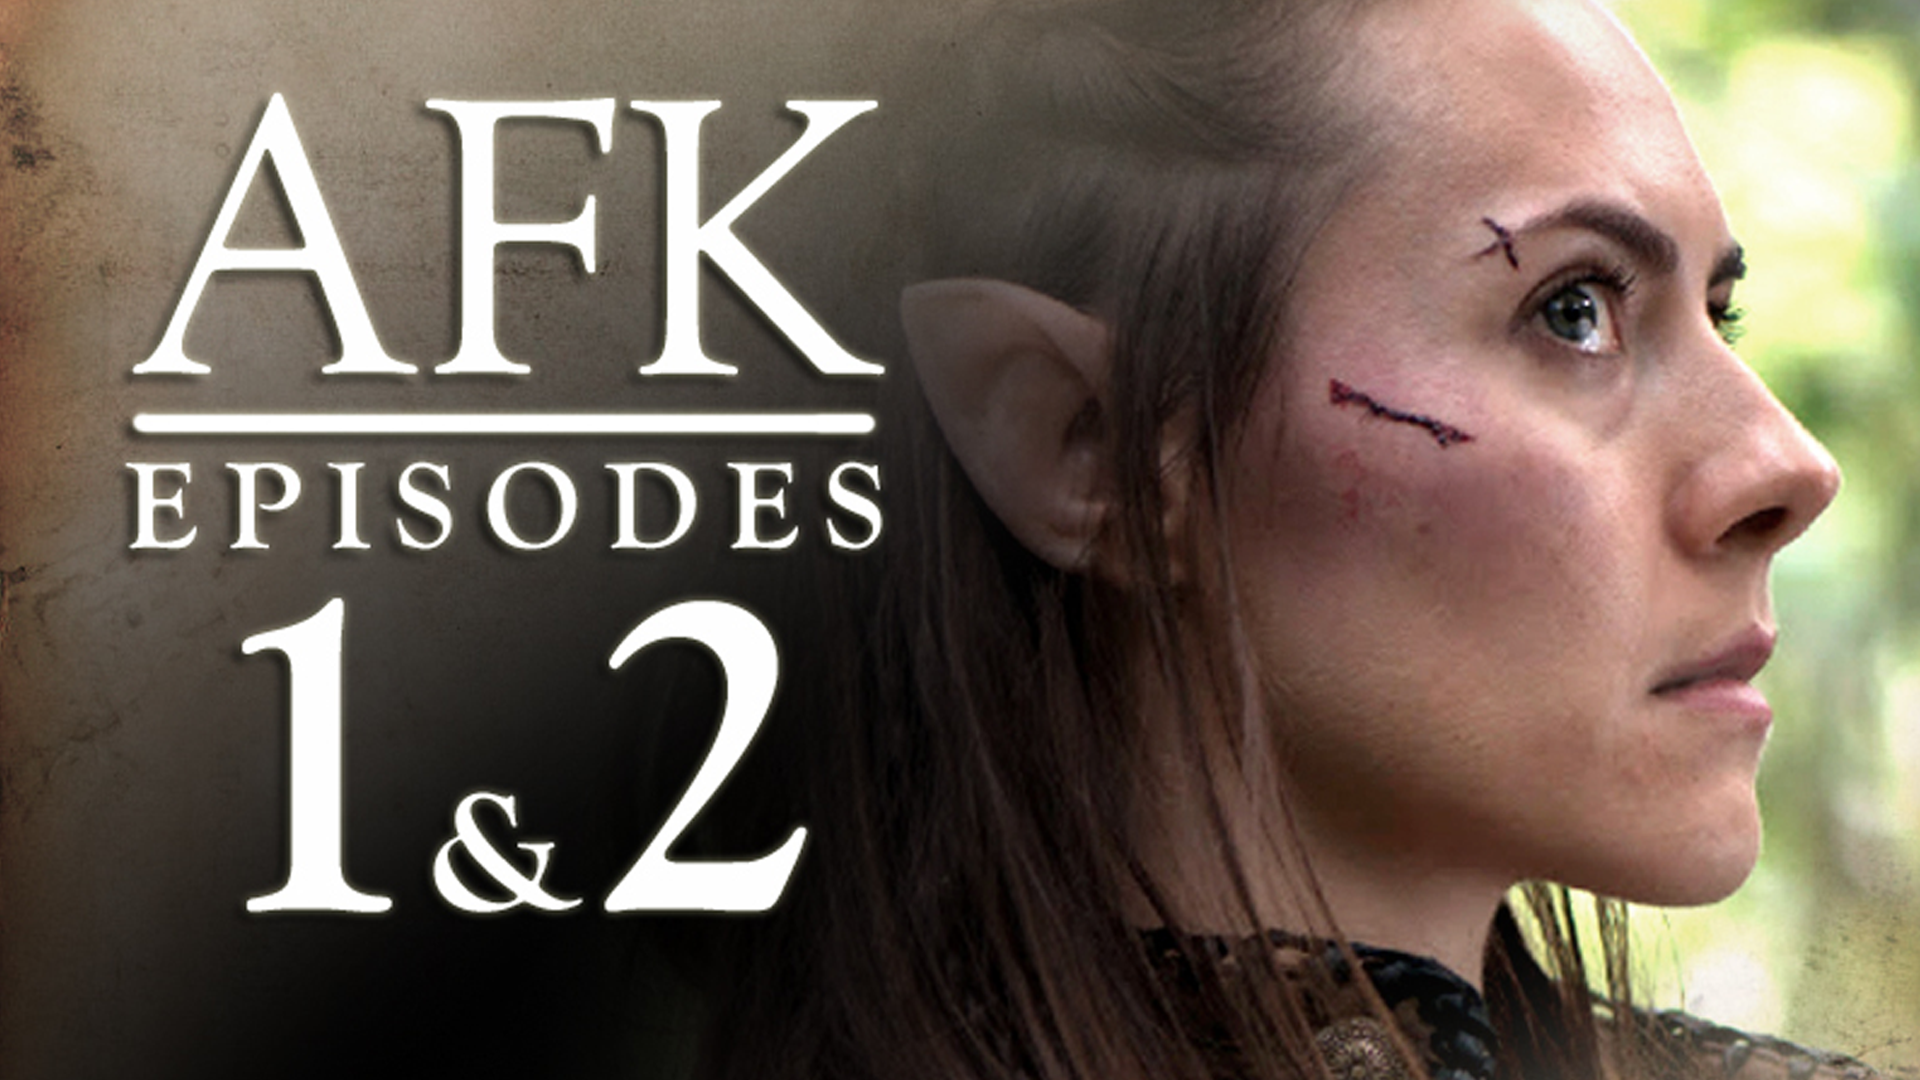 AFK Season 1 Episodes 1 and 2 Pilot